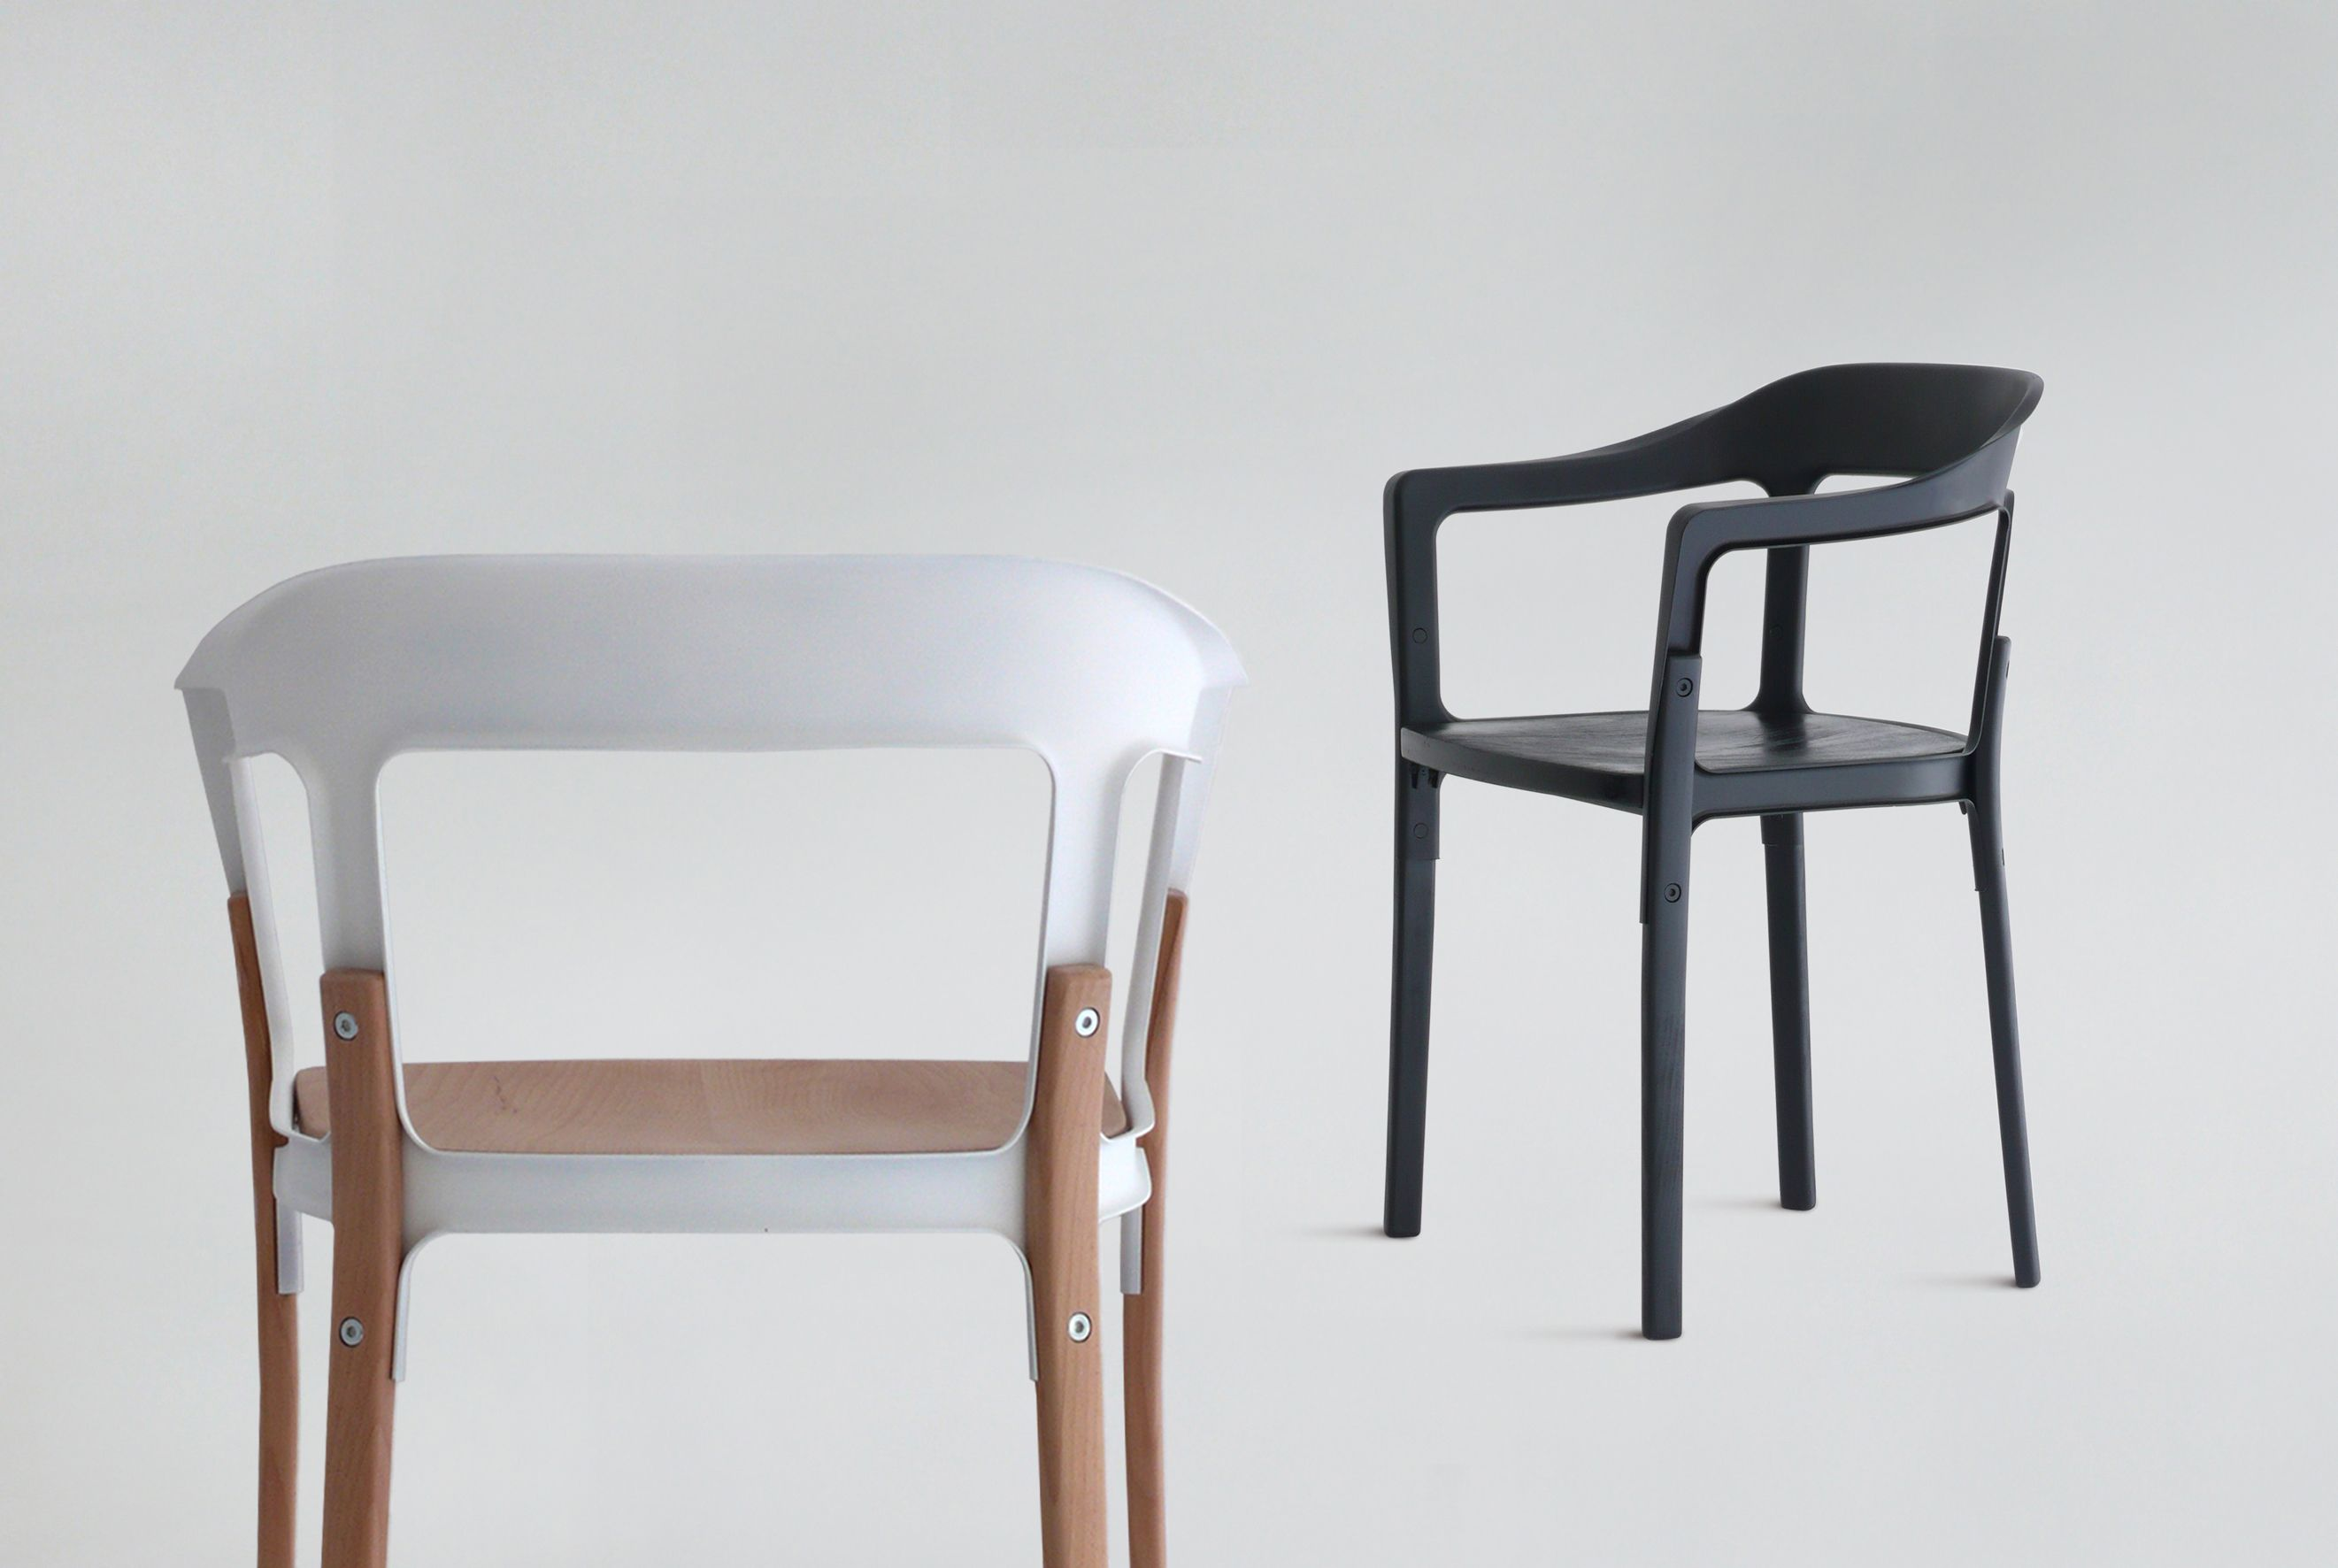 nero visitors officina product chair en magis sedia architonic chairs side from by b fronte